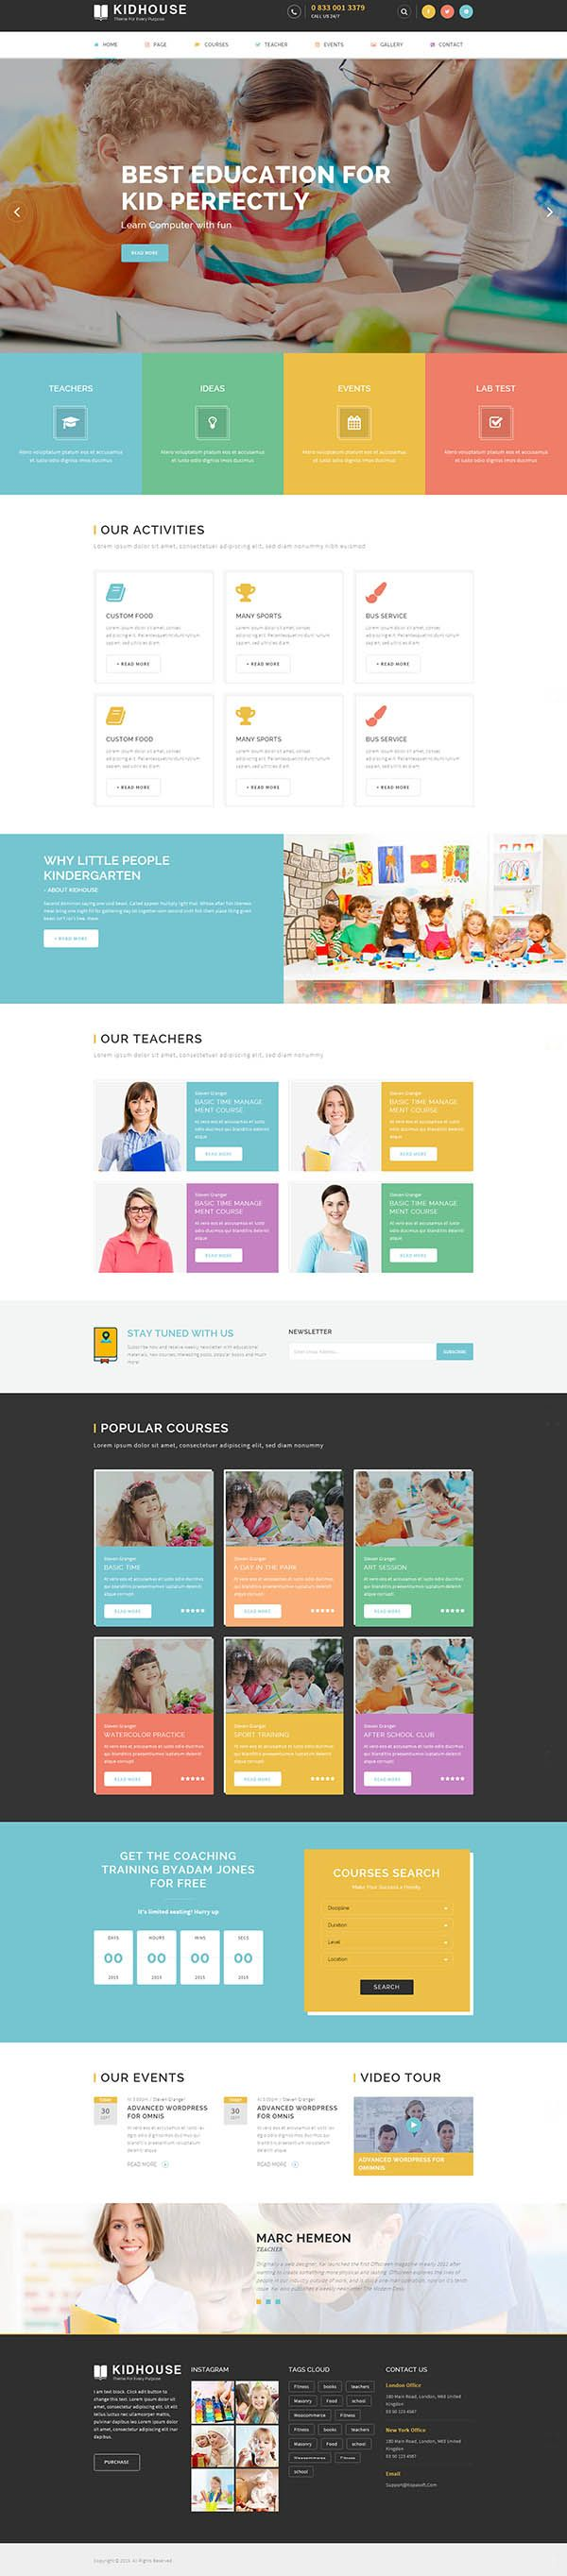 Upside – Multi purpose WordPress theme